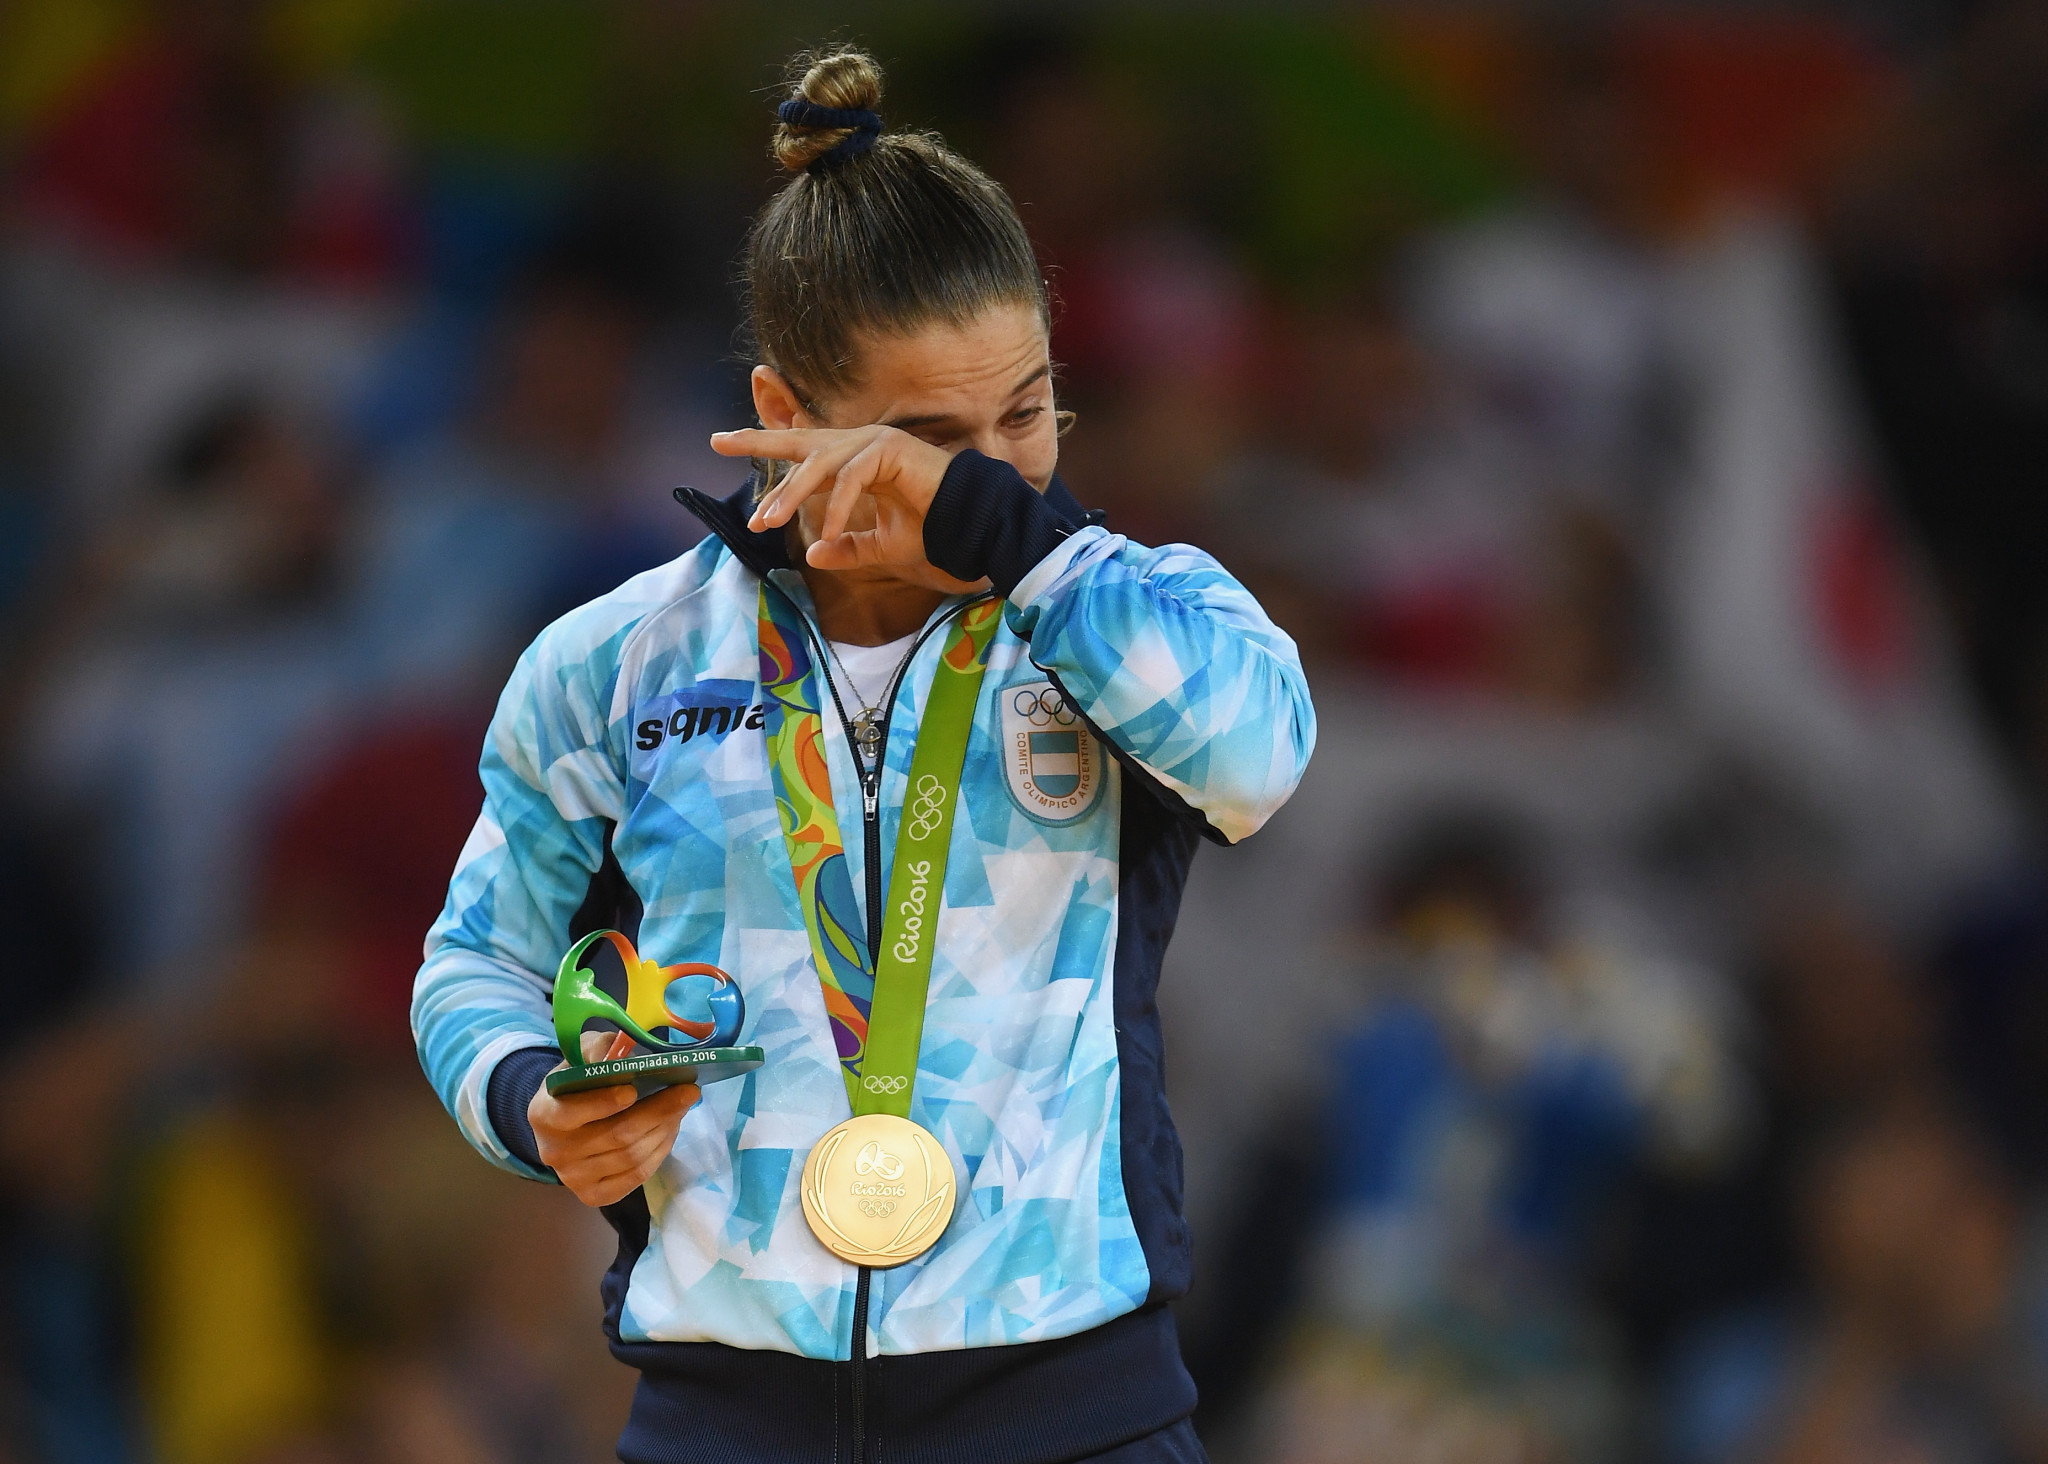 Paula Pareto is another Olympic champion who has been treating COVID-19 patients during the pandemic ©Getty Images